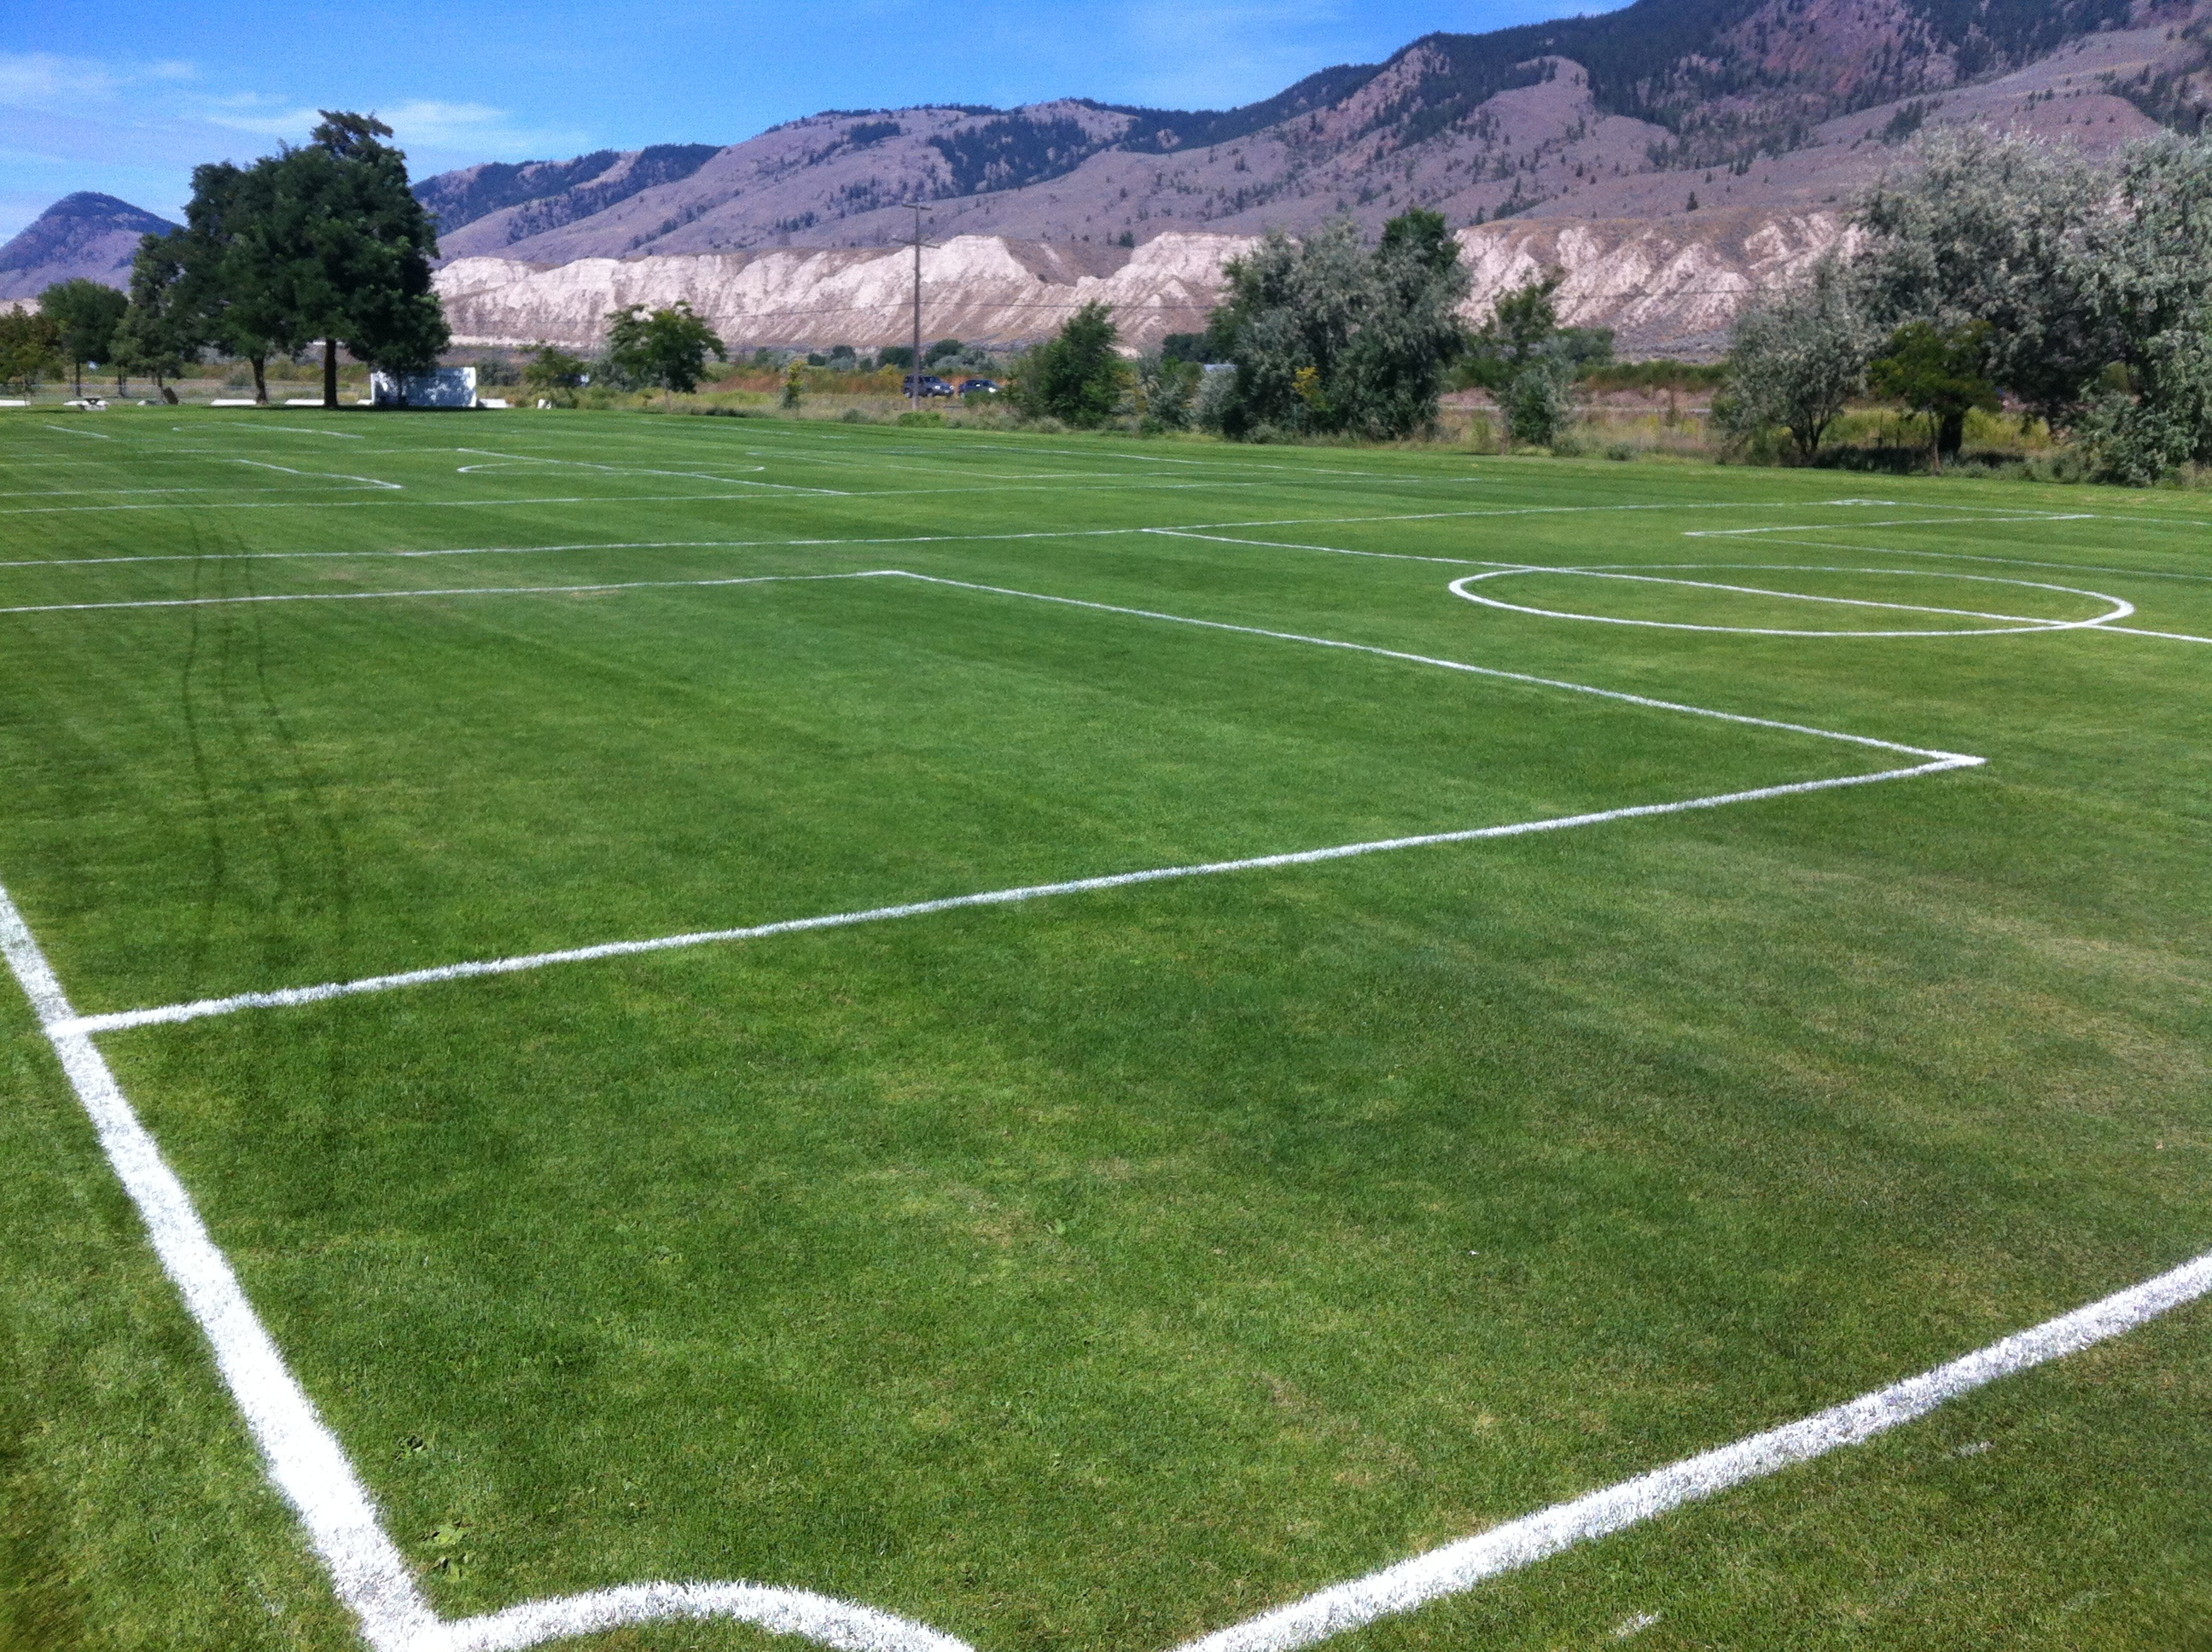 kamloops field.jpg